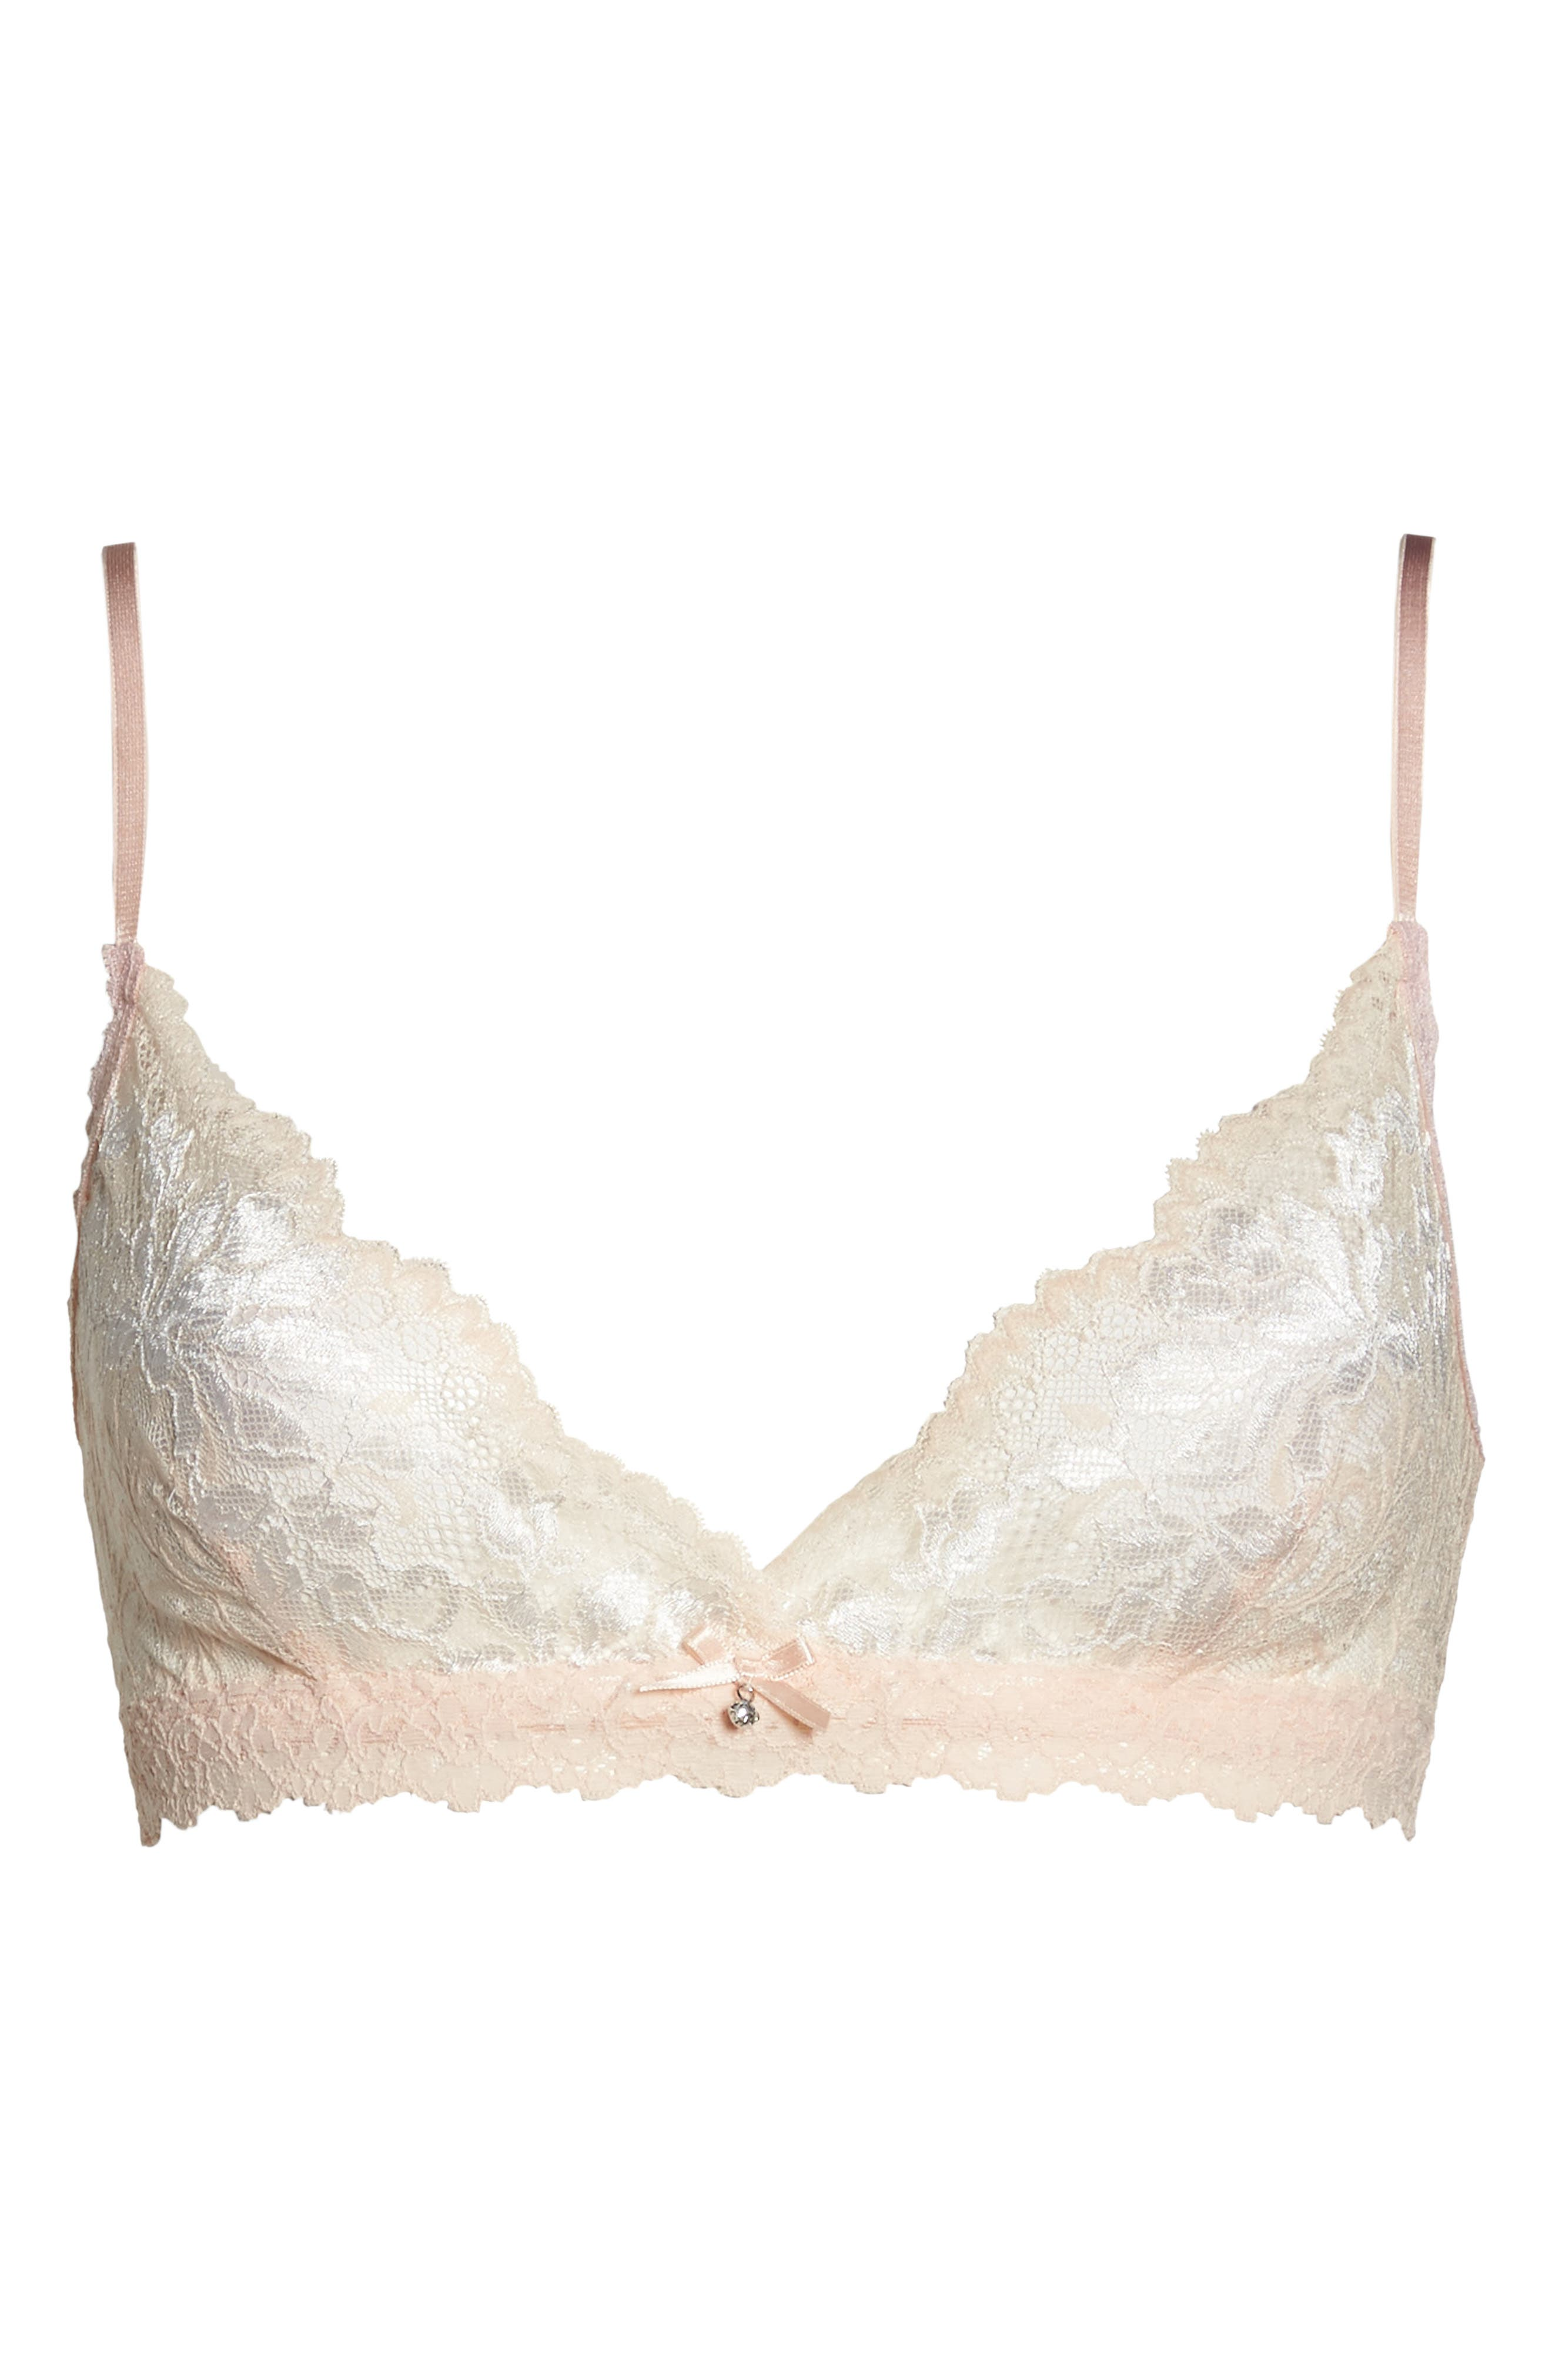 Alexia Lace Bralette,                             Alternate thumbnail 6, color,                             ALEXIA VAN